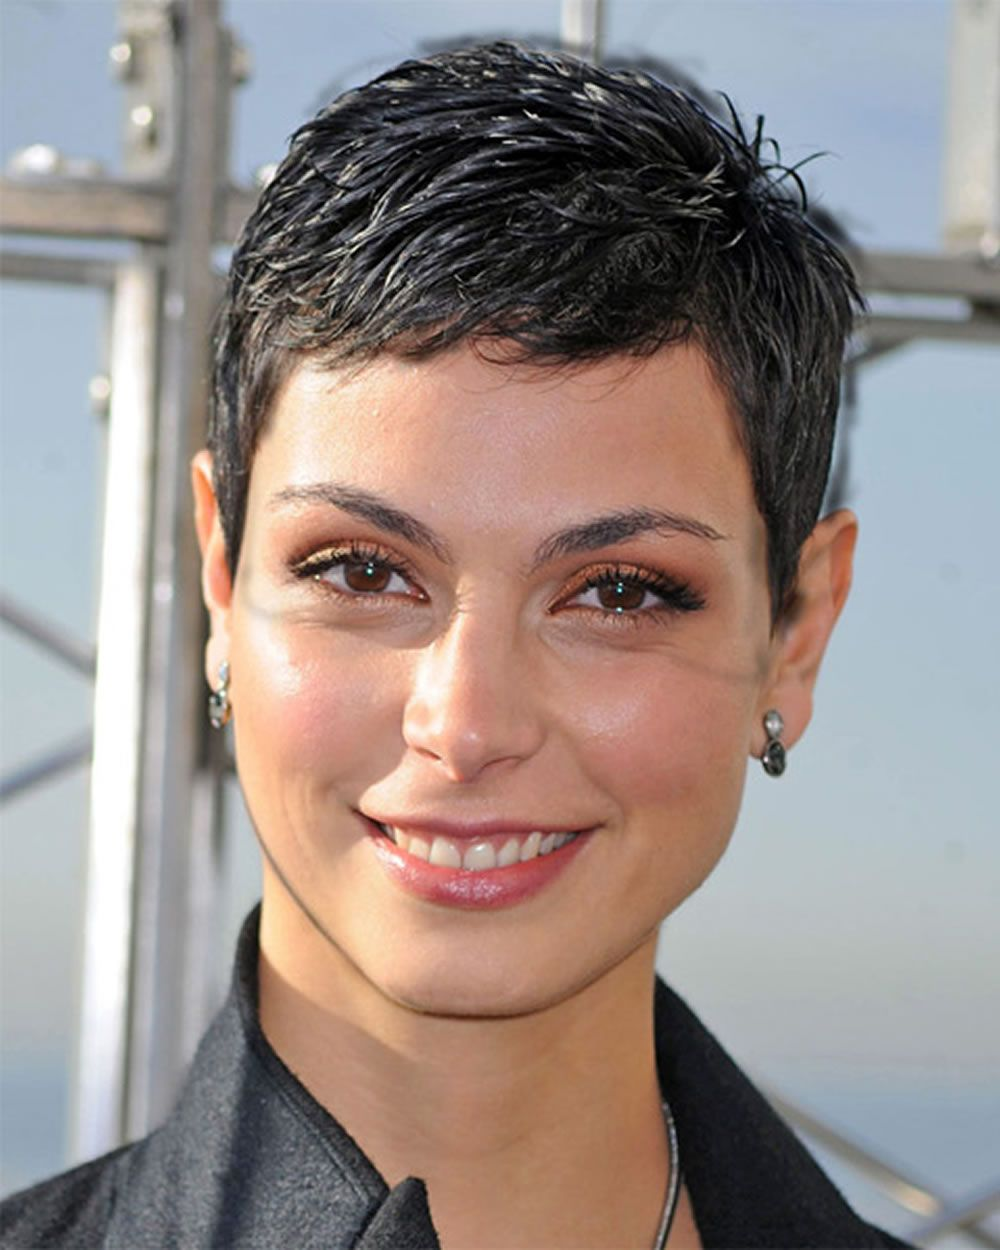 50 Trendy Pixie Haircuts Short Hair Ideas For 2020 2021 In 2020 Short Hair Pictures Super Short Hair Short Hair Styles Pixie